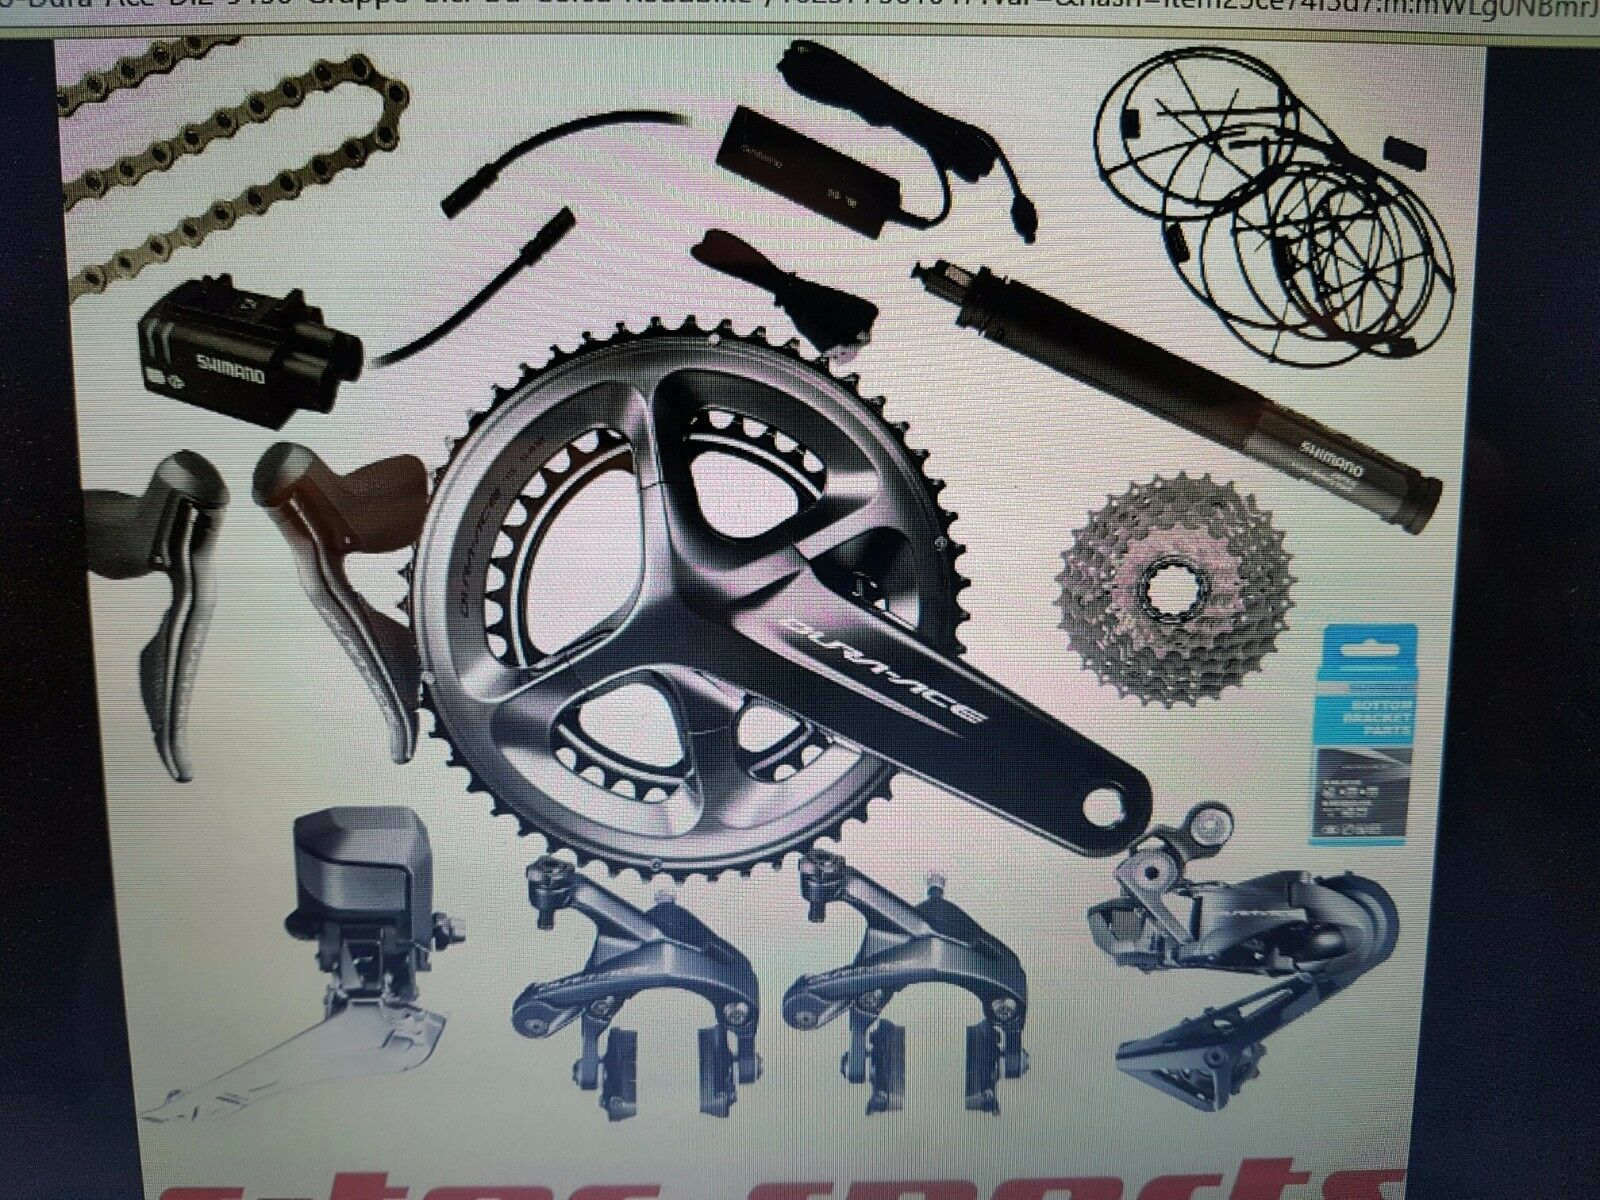 Shimano Gruppo Dura Ace  Di2 9150 11s 50 34 172,5 11 28 anche con direct mount  new exclusive high-end